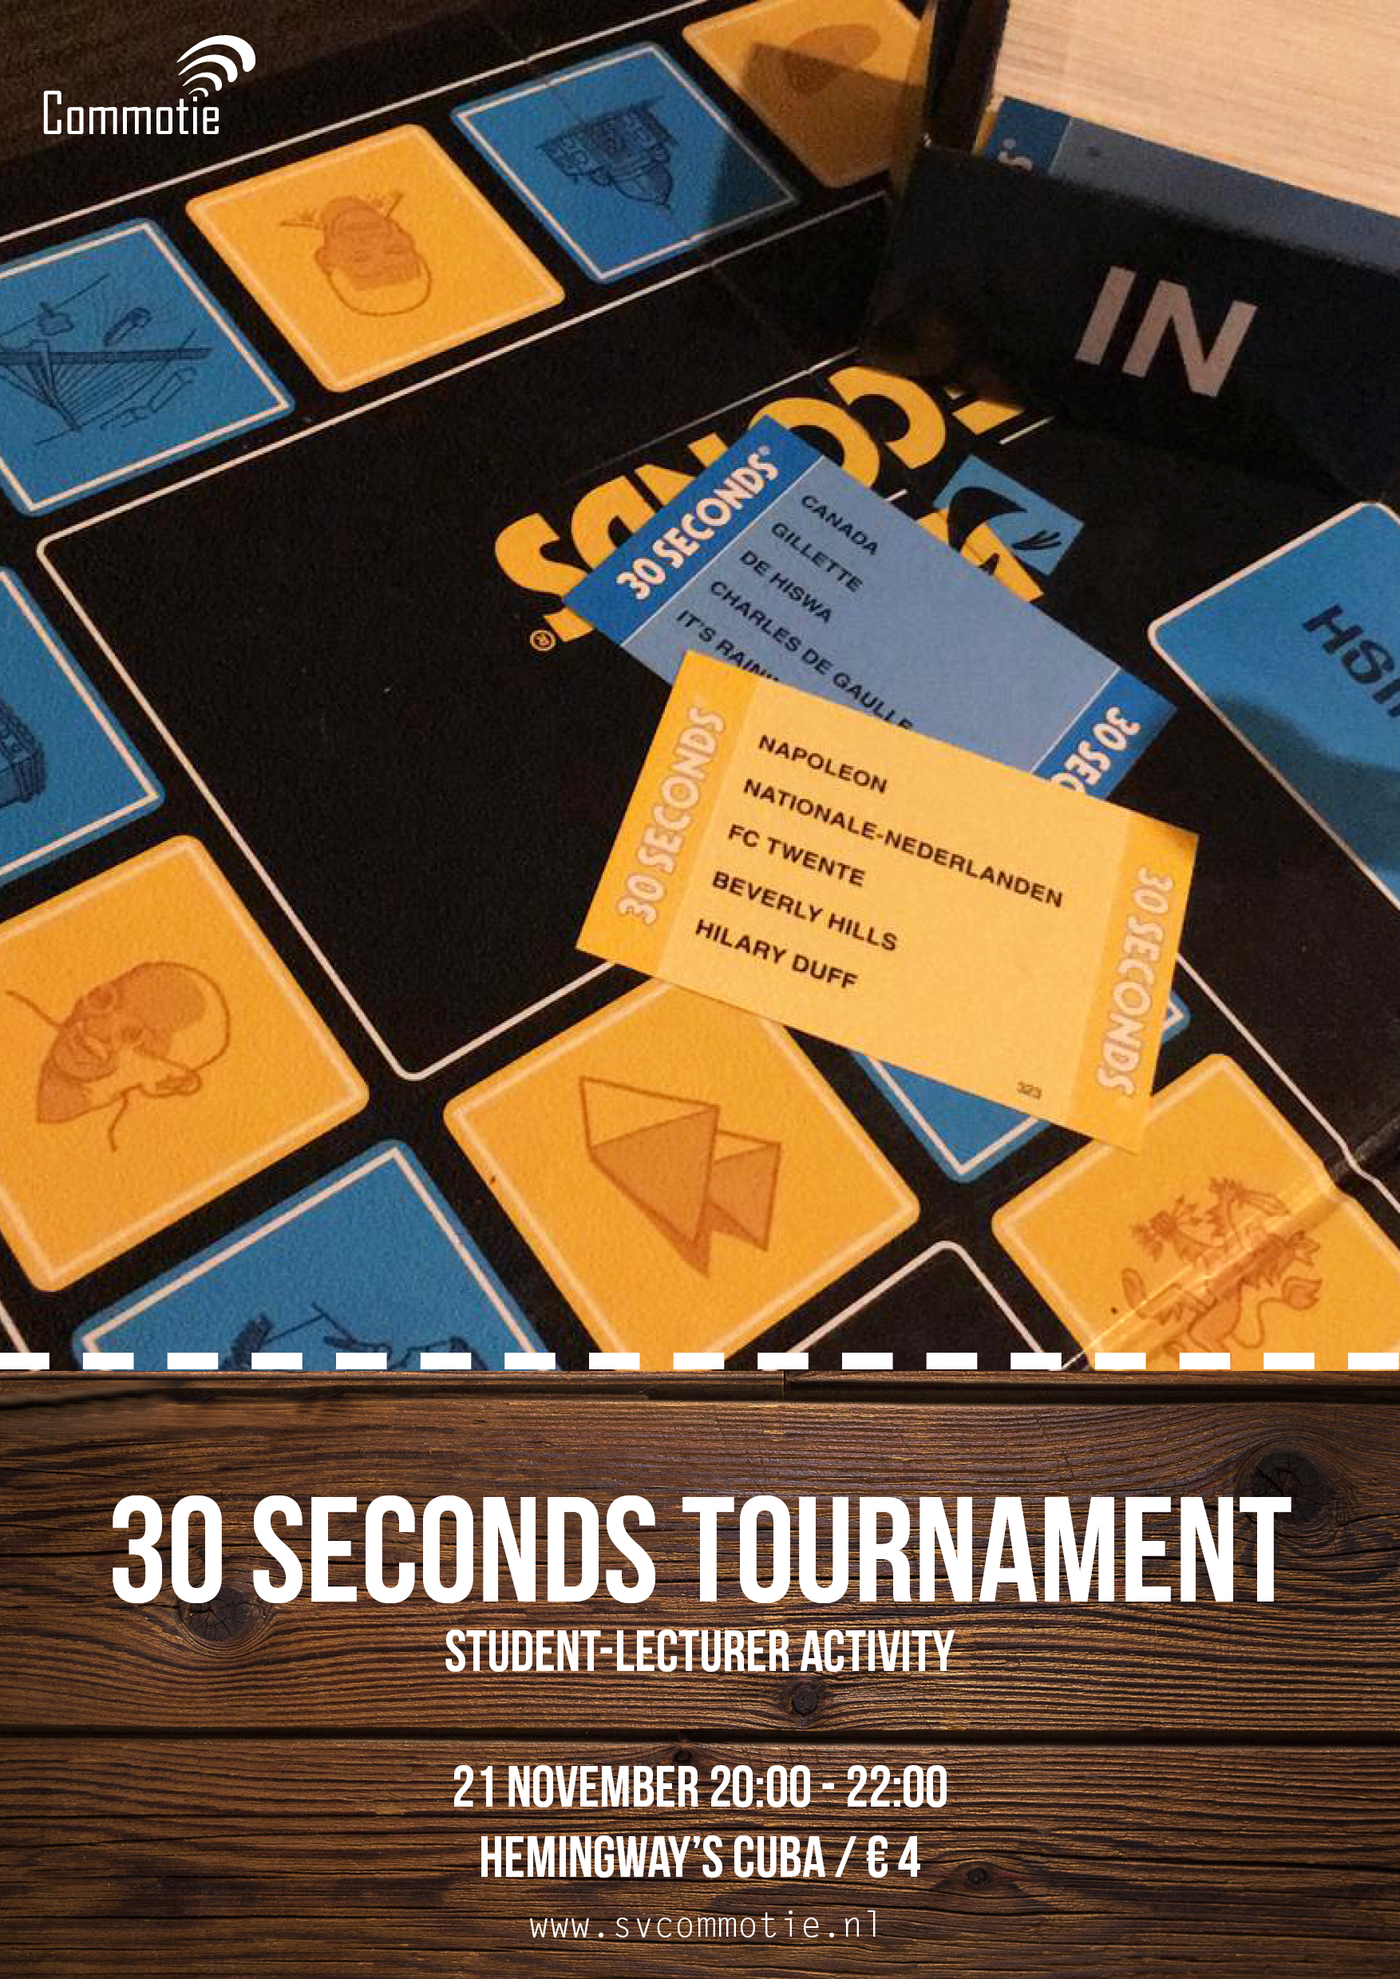 Student-lecturer activity: 30 seconds tournament